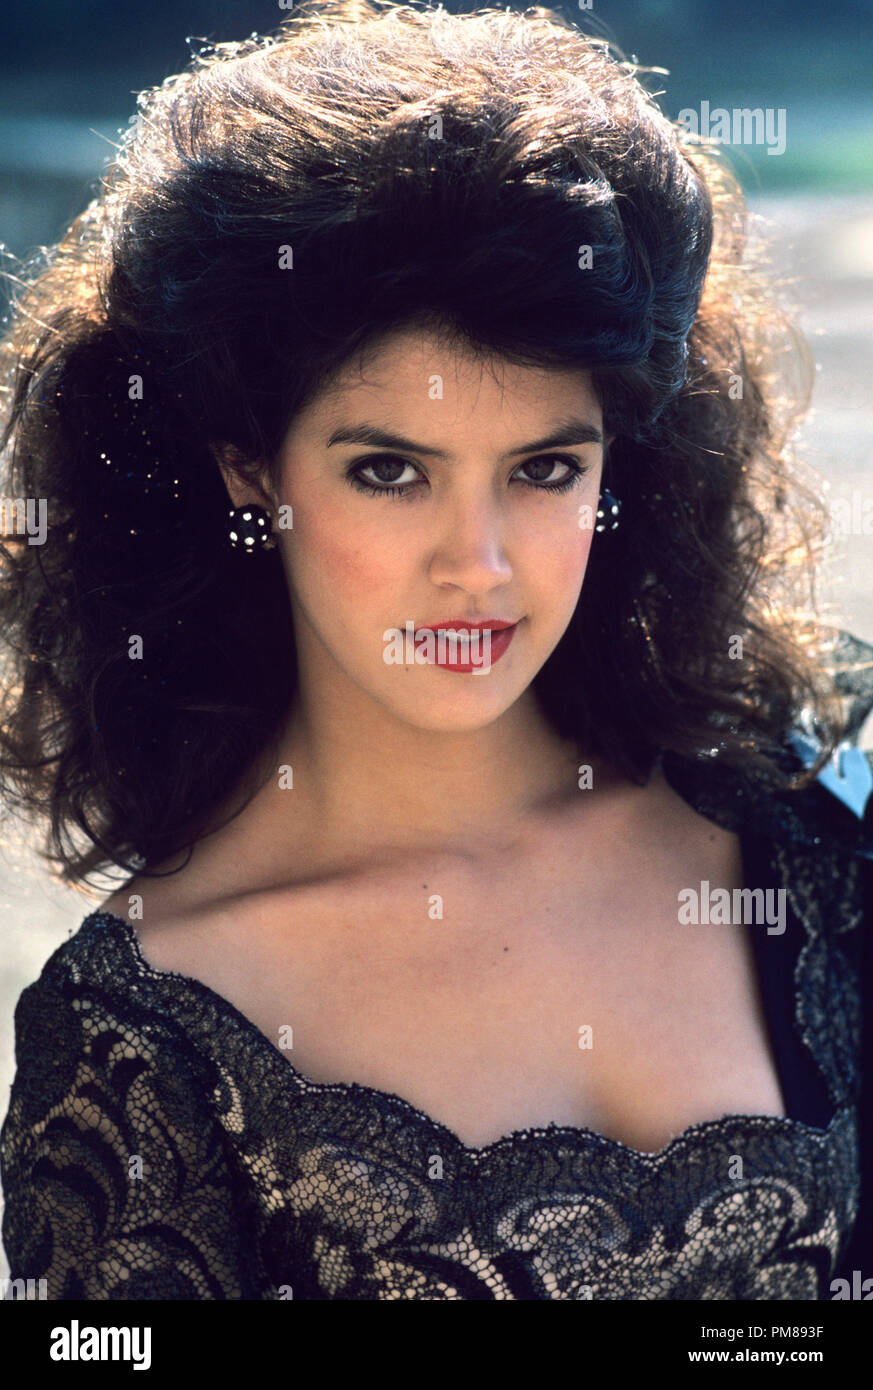 Phoebe Cates Nude Photos 1